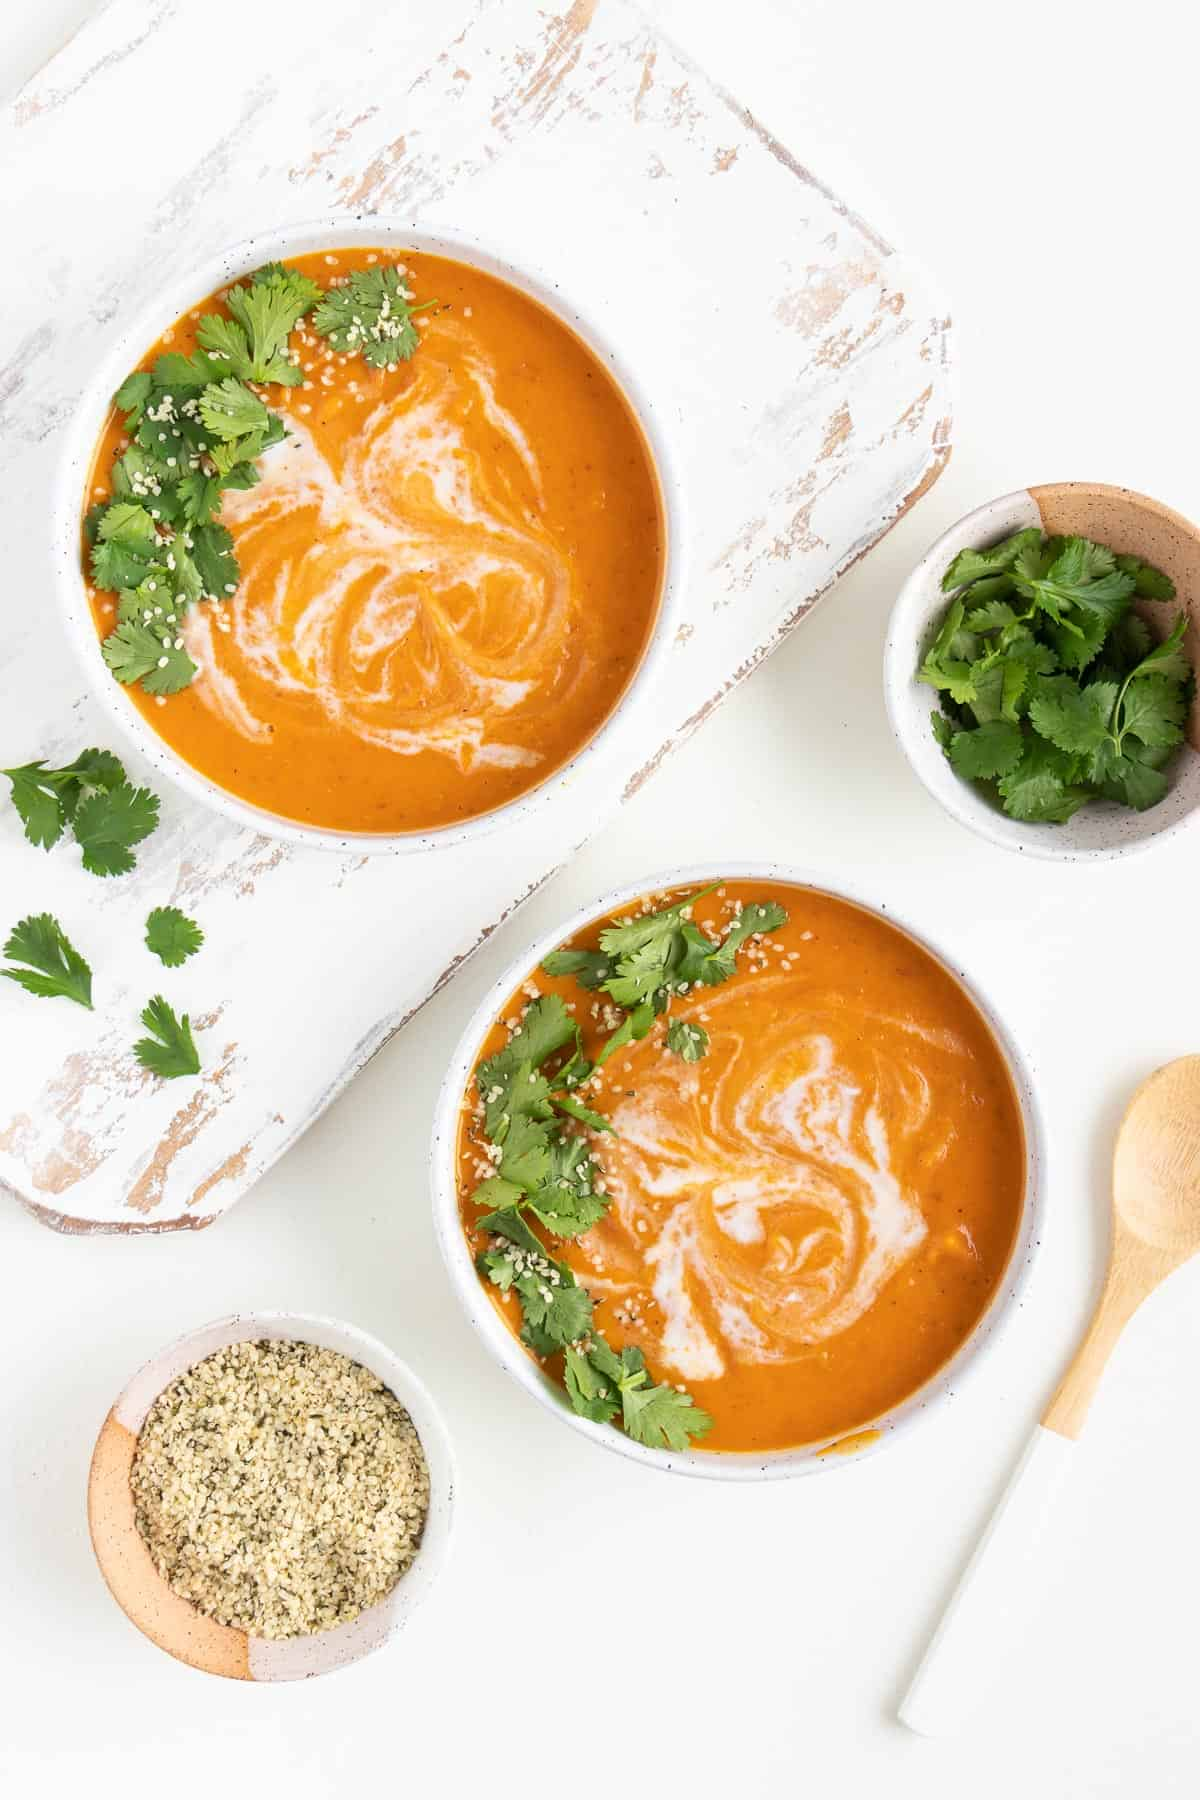 two bowls of creamy vegan sweet potato soup next to small bowls with cilantro and hemp seeds inside